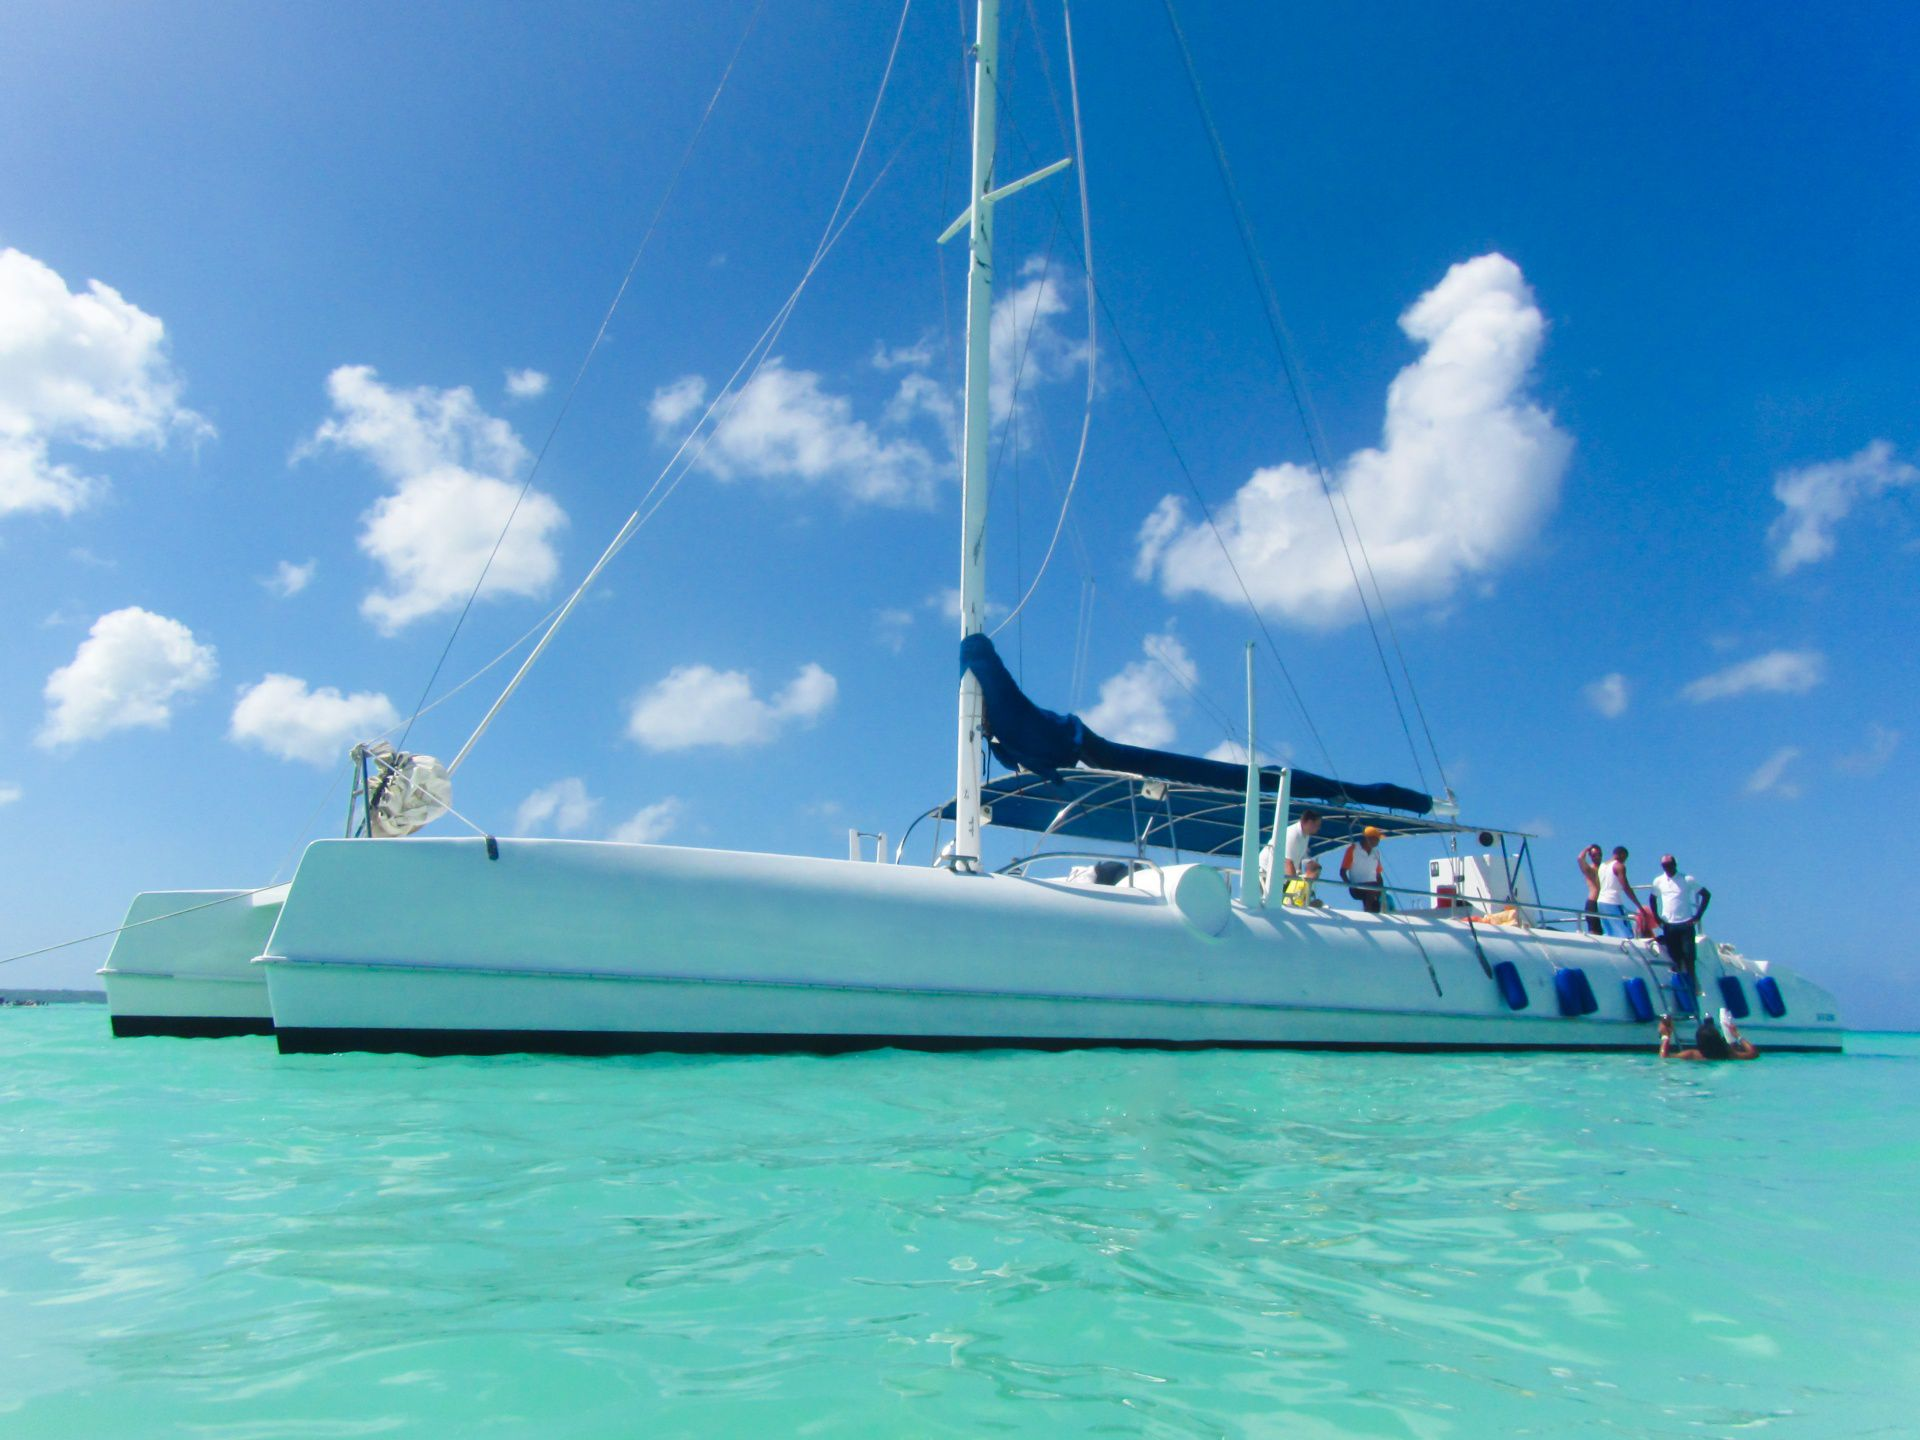 Explore The Beauty Of Caribbean: How To Charter A Yacht For The Ultimate Caribbean Boating